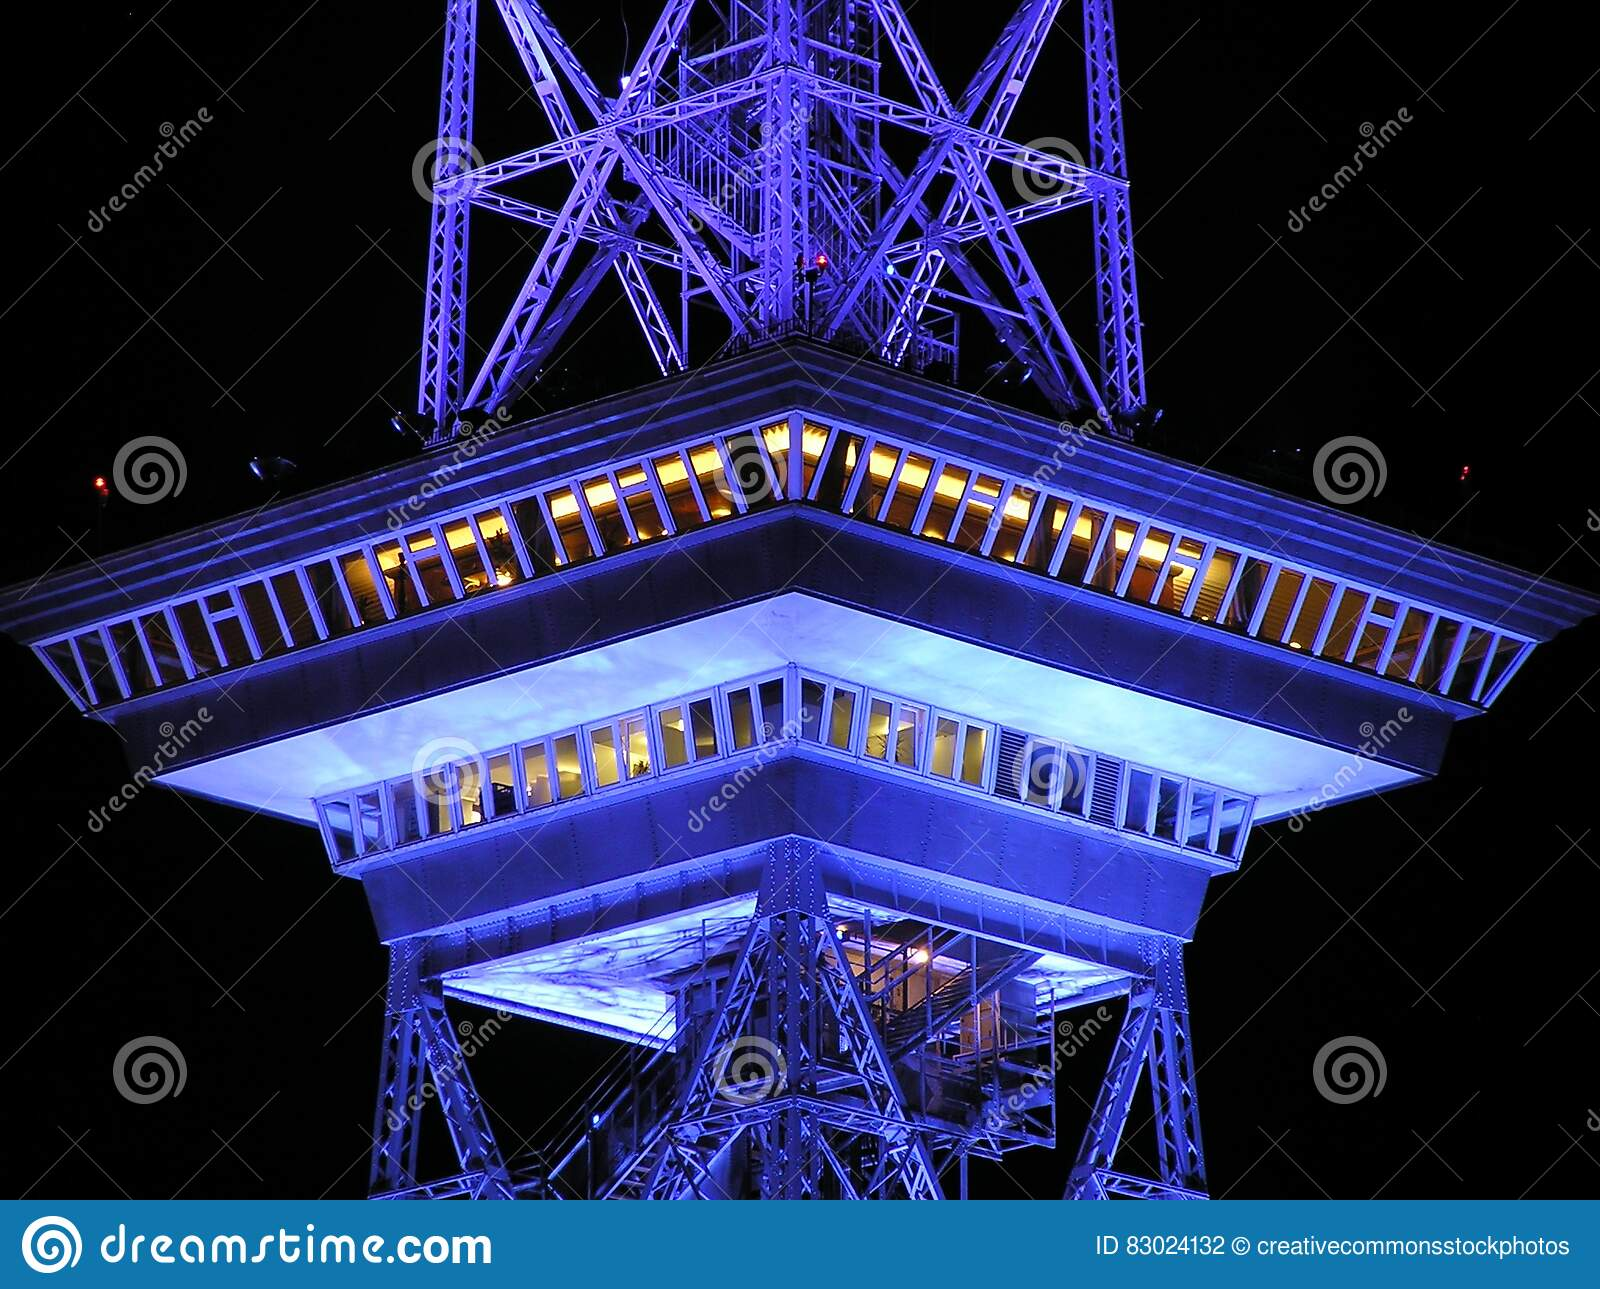 Download Black And White Tower During Nighttime Stock Photo - Image of tower, building: 83024132